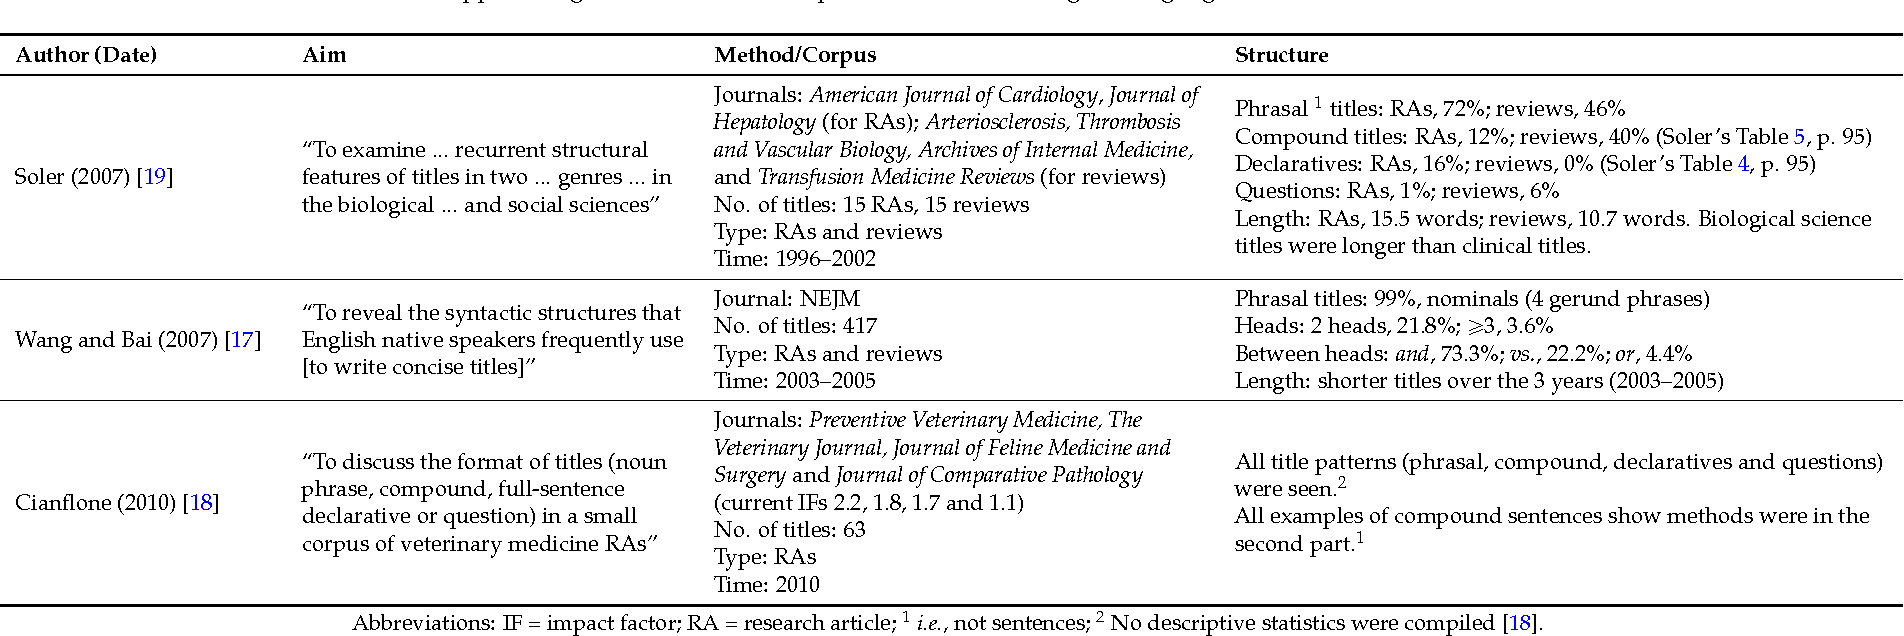 Table 2 from Content and Phrasing in Titles of Original